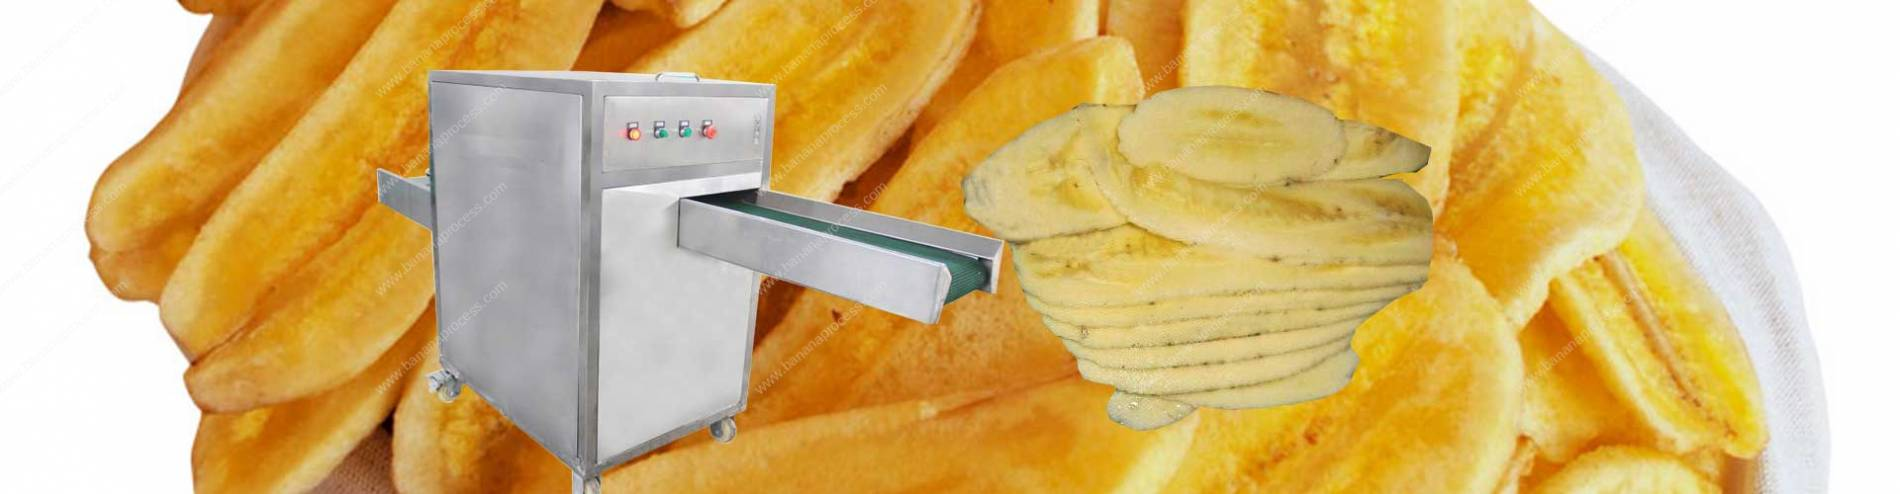 Automatic Banana Longitudinal Slicer Machine